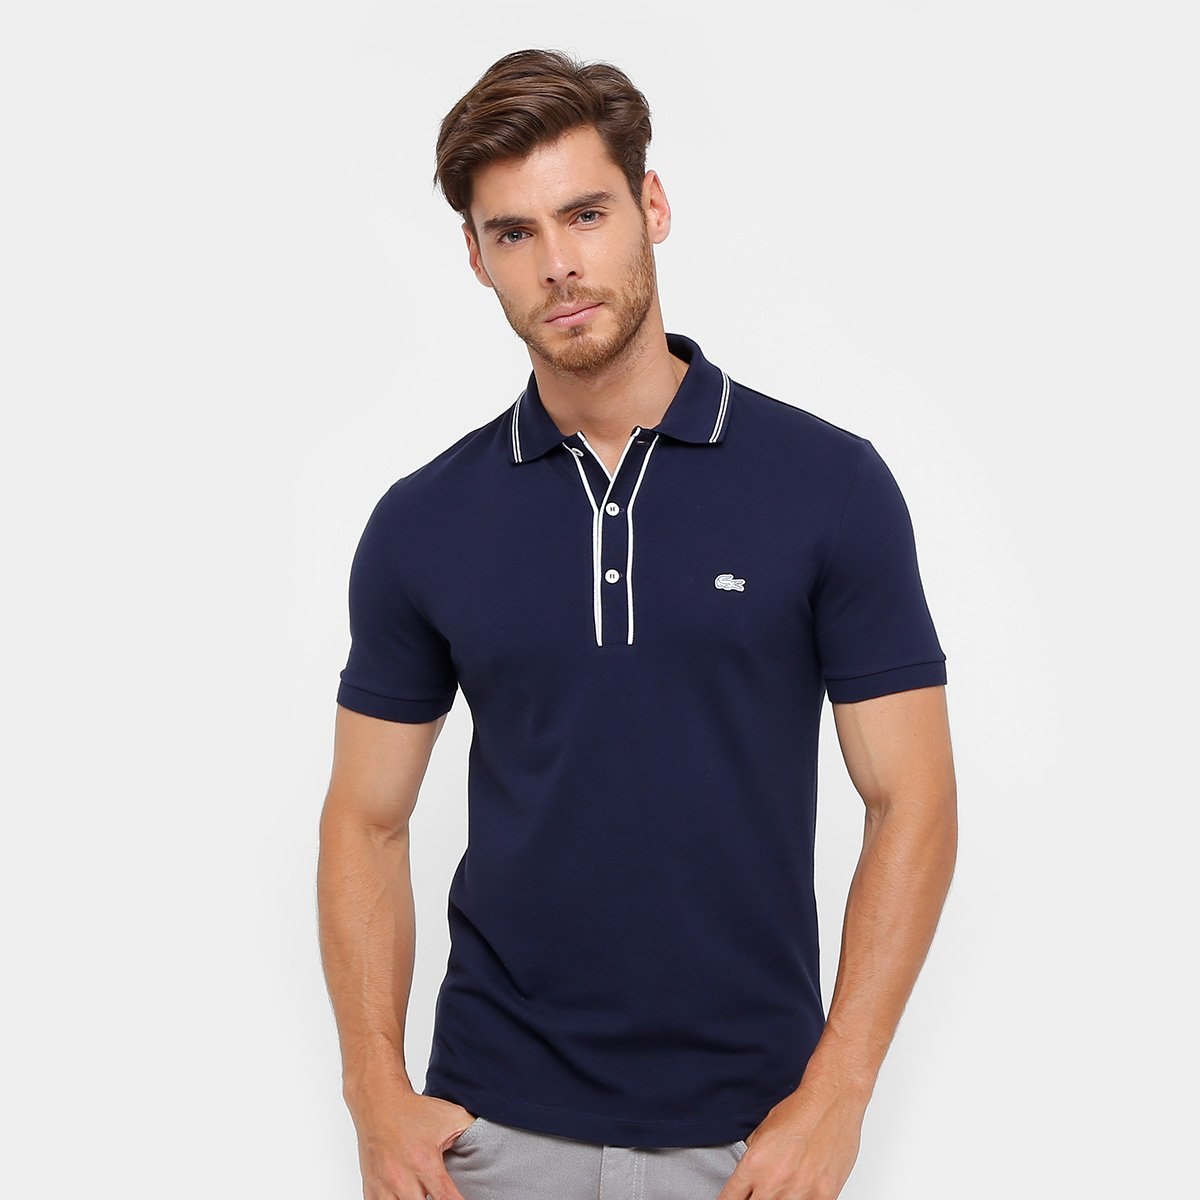 6601f185a32b4 Camisa Polo Lacoste Slim Fit Masculina - Compre Agora   Netshoes